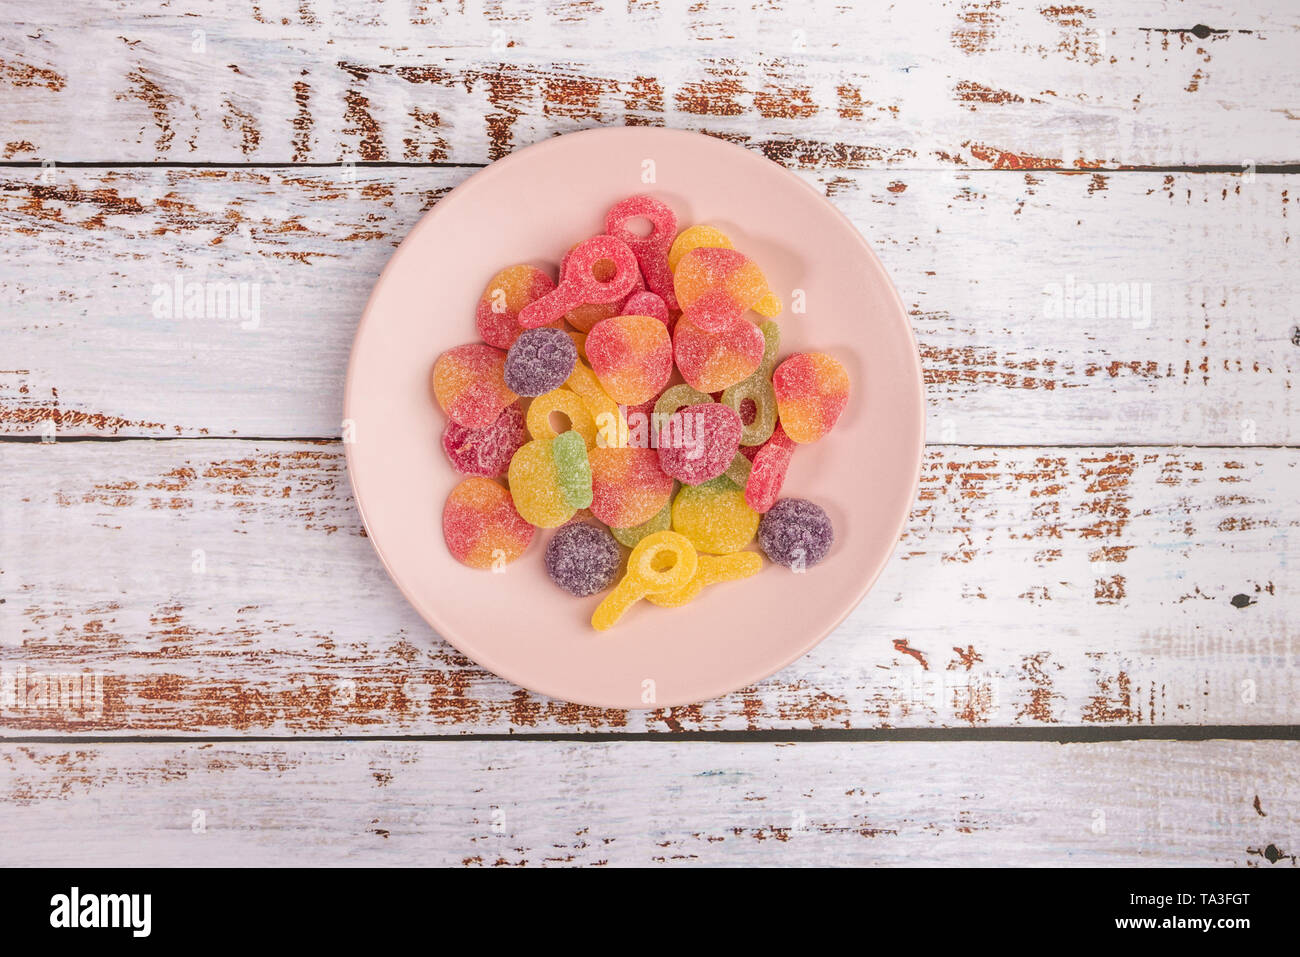 Pink plate with gummy candies on white wooden background. Top view. - Stock Image